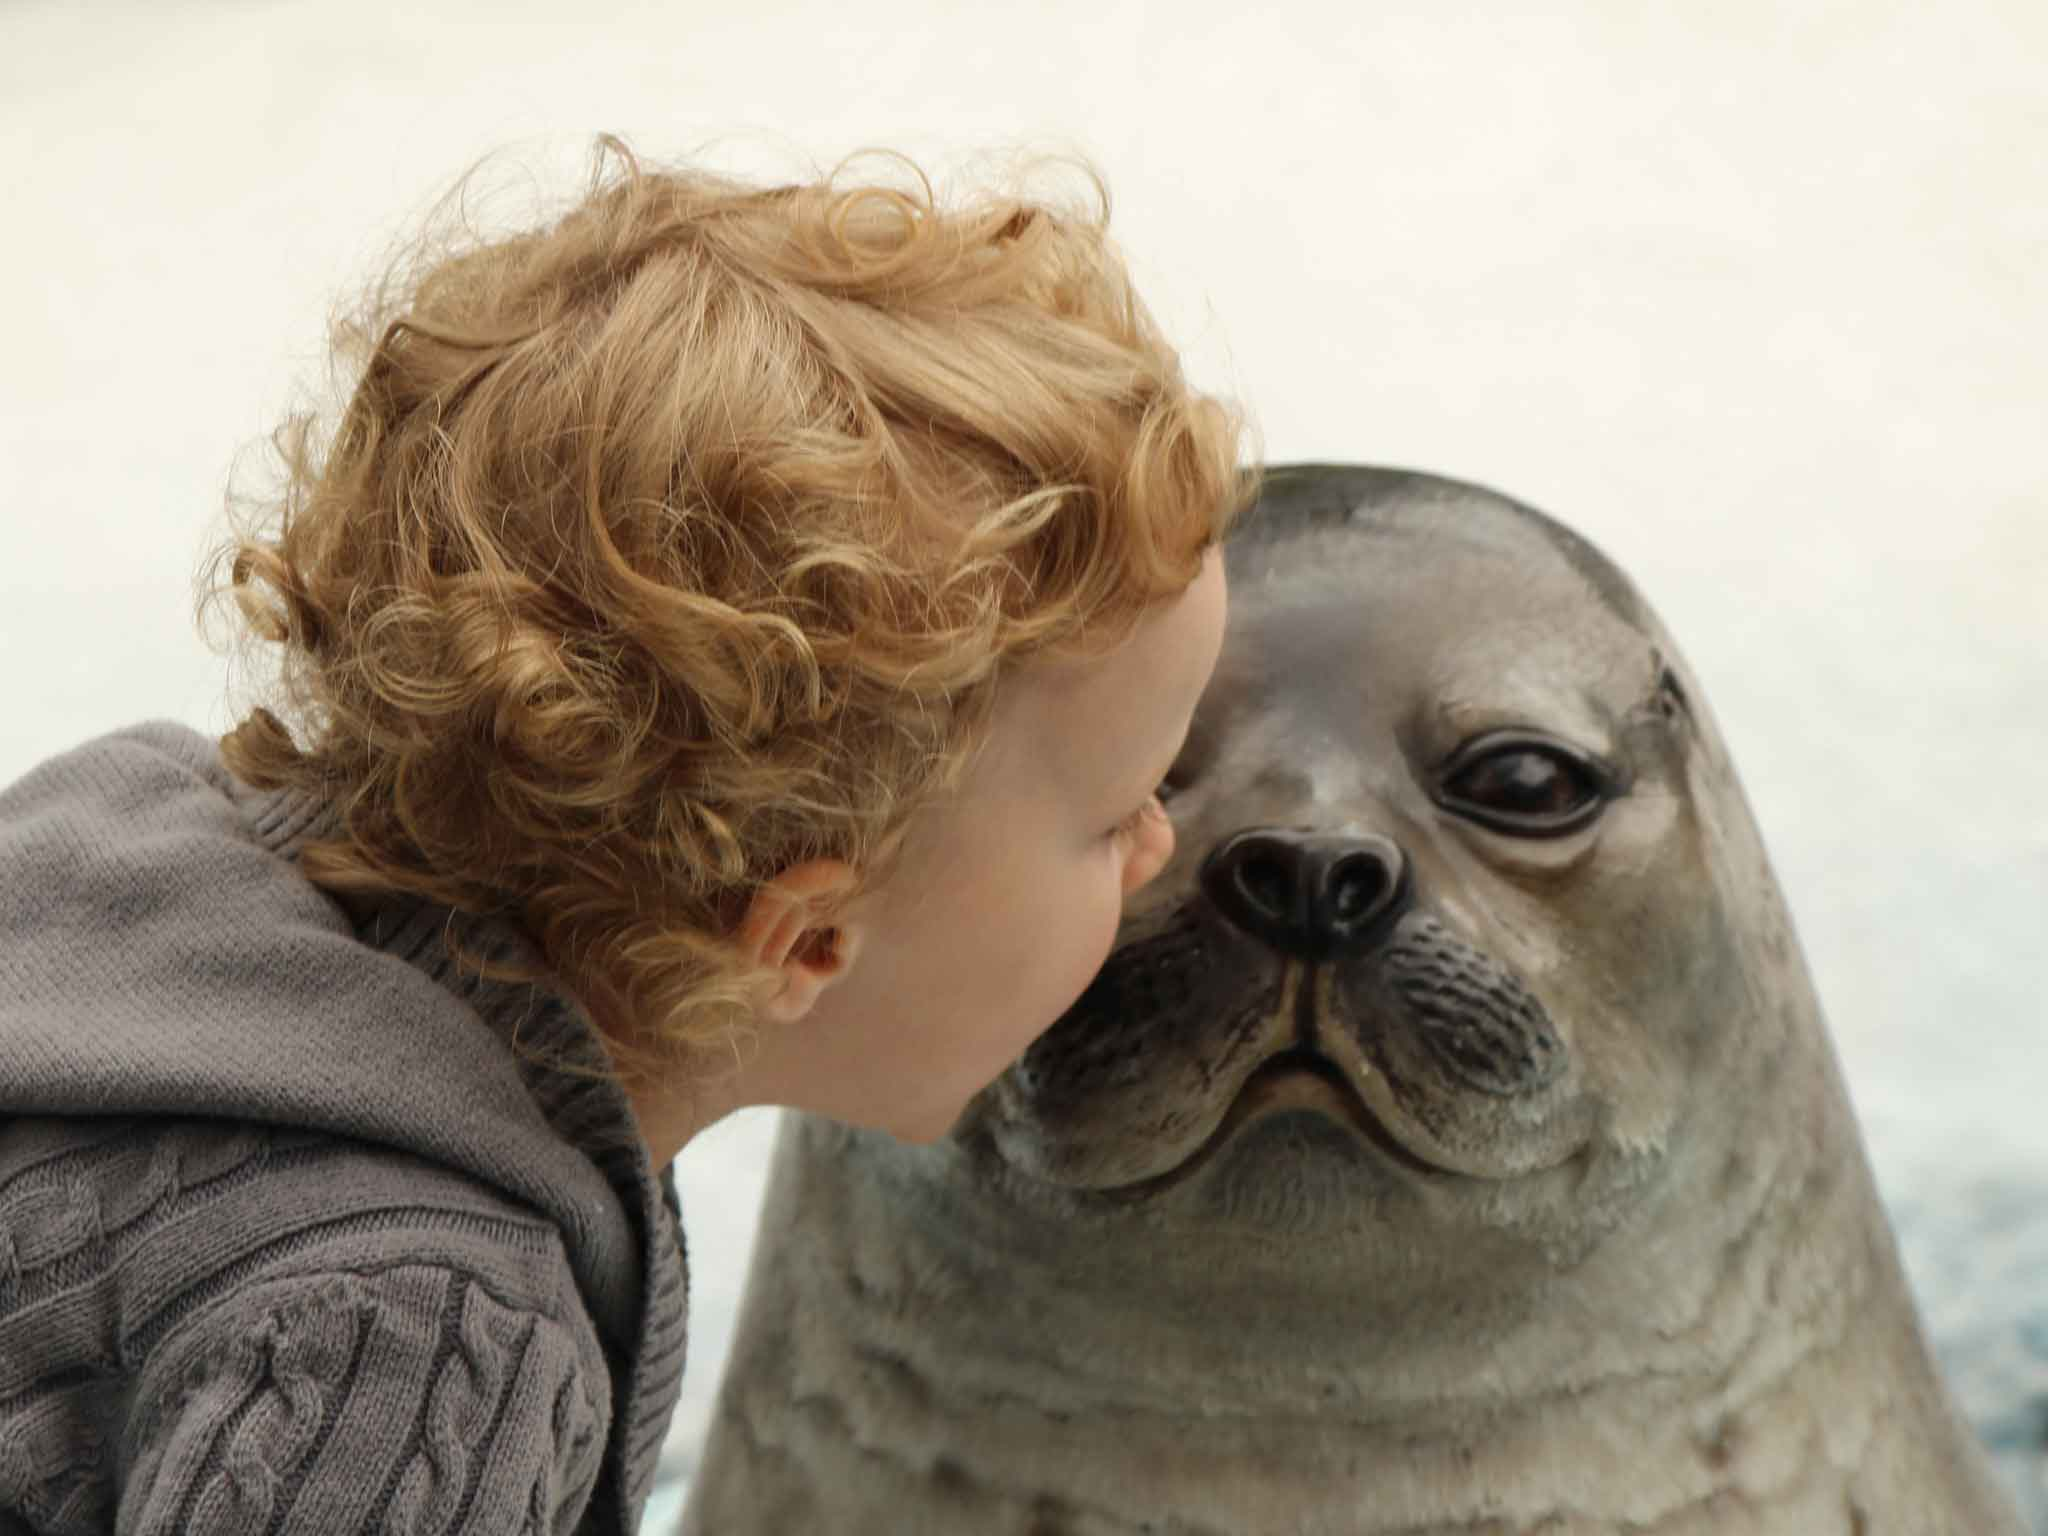 A toddler gets close to a picture of a seal at the San Diego Zoo